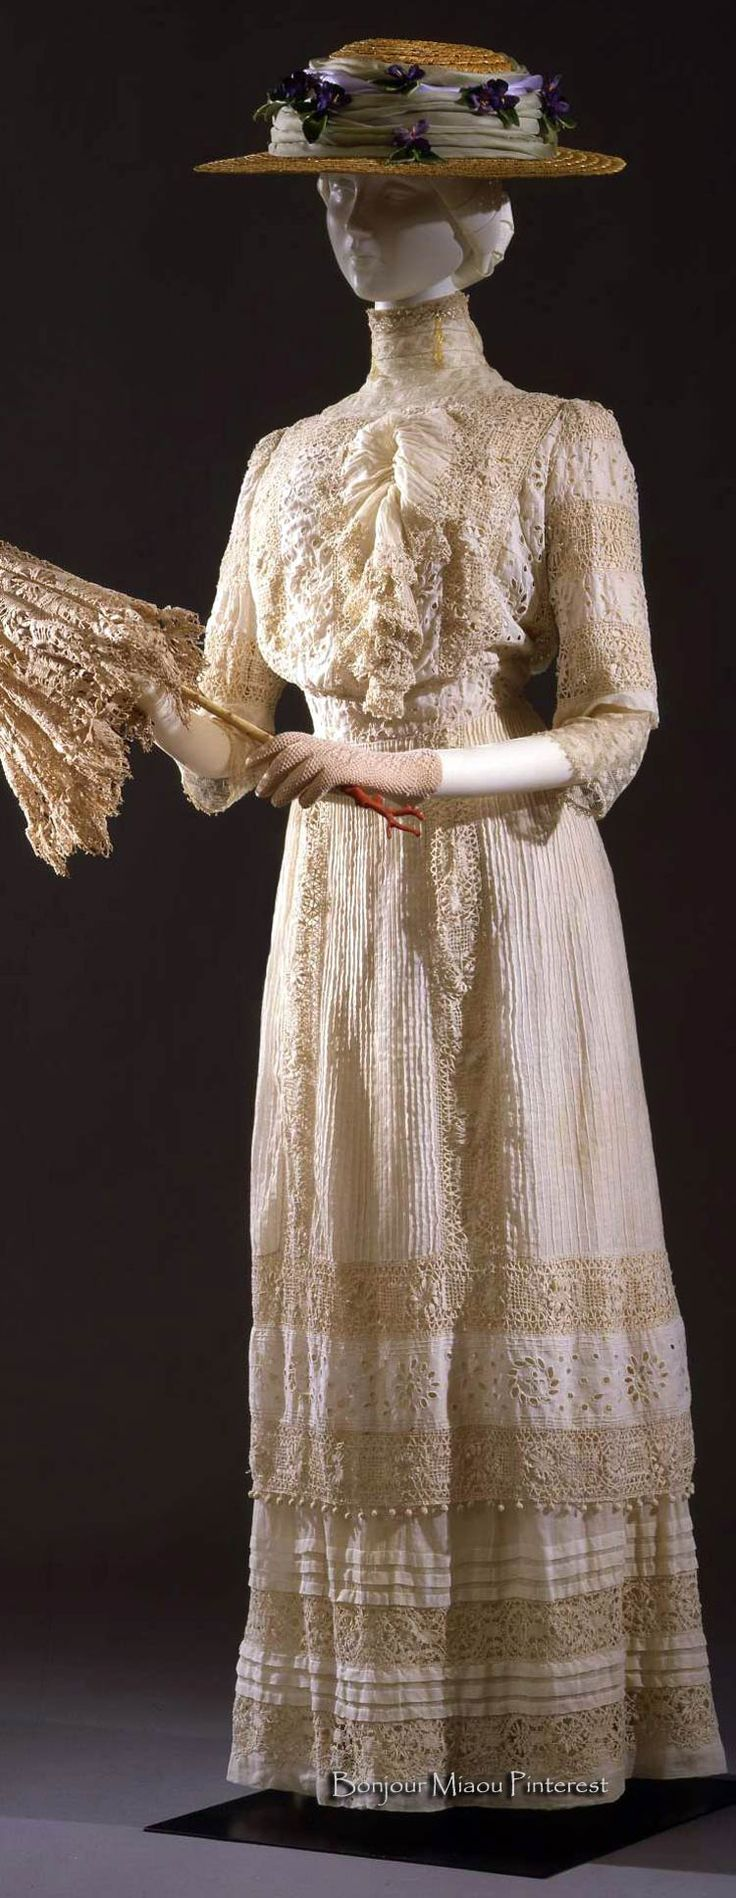 Walking dress, Italian (?), ca. early 20th century. White batiste with Valenciennes-style lace. Costume Gallery of the Pitti Palace via Europeana Fashion